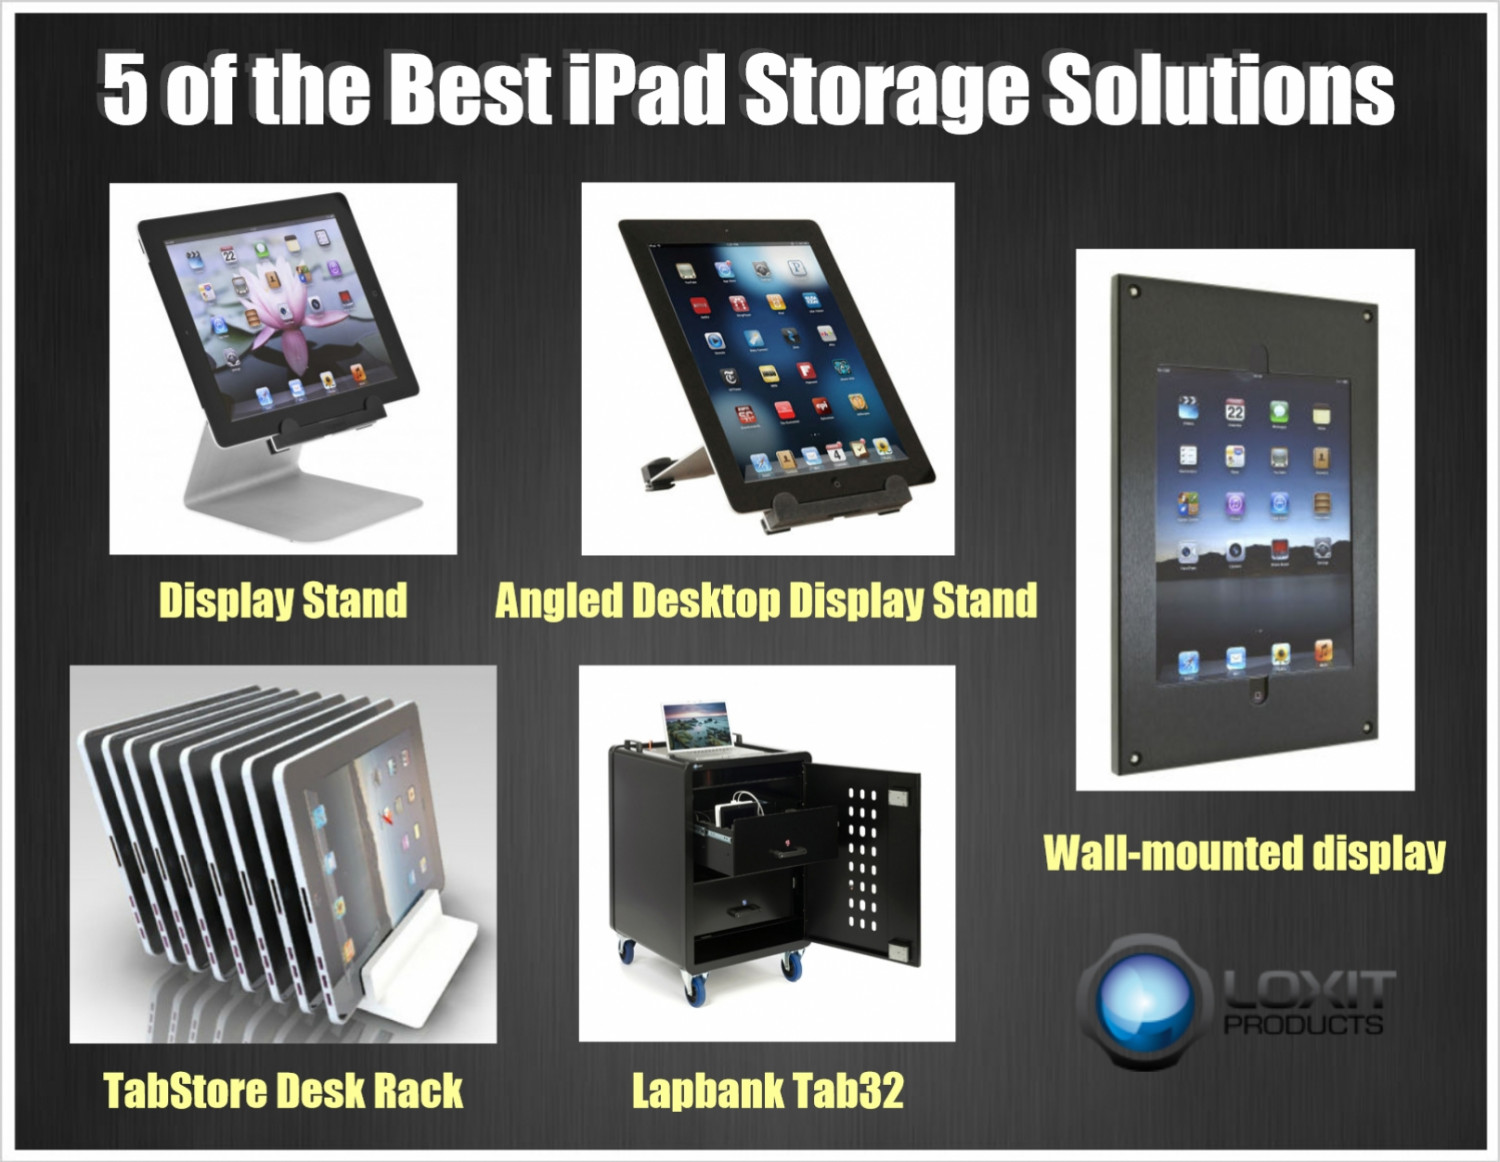 5 of the Best iPad Storage Solutions Infographic